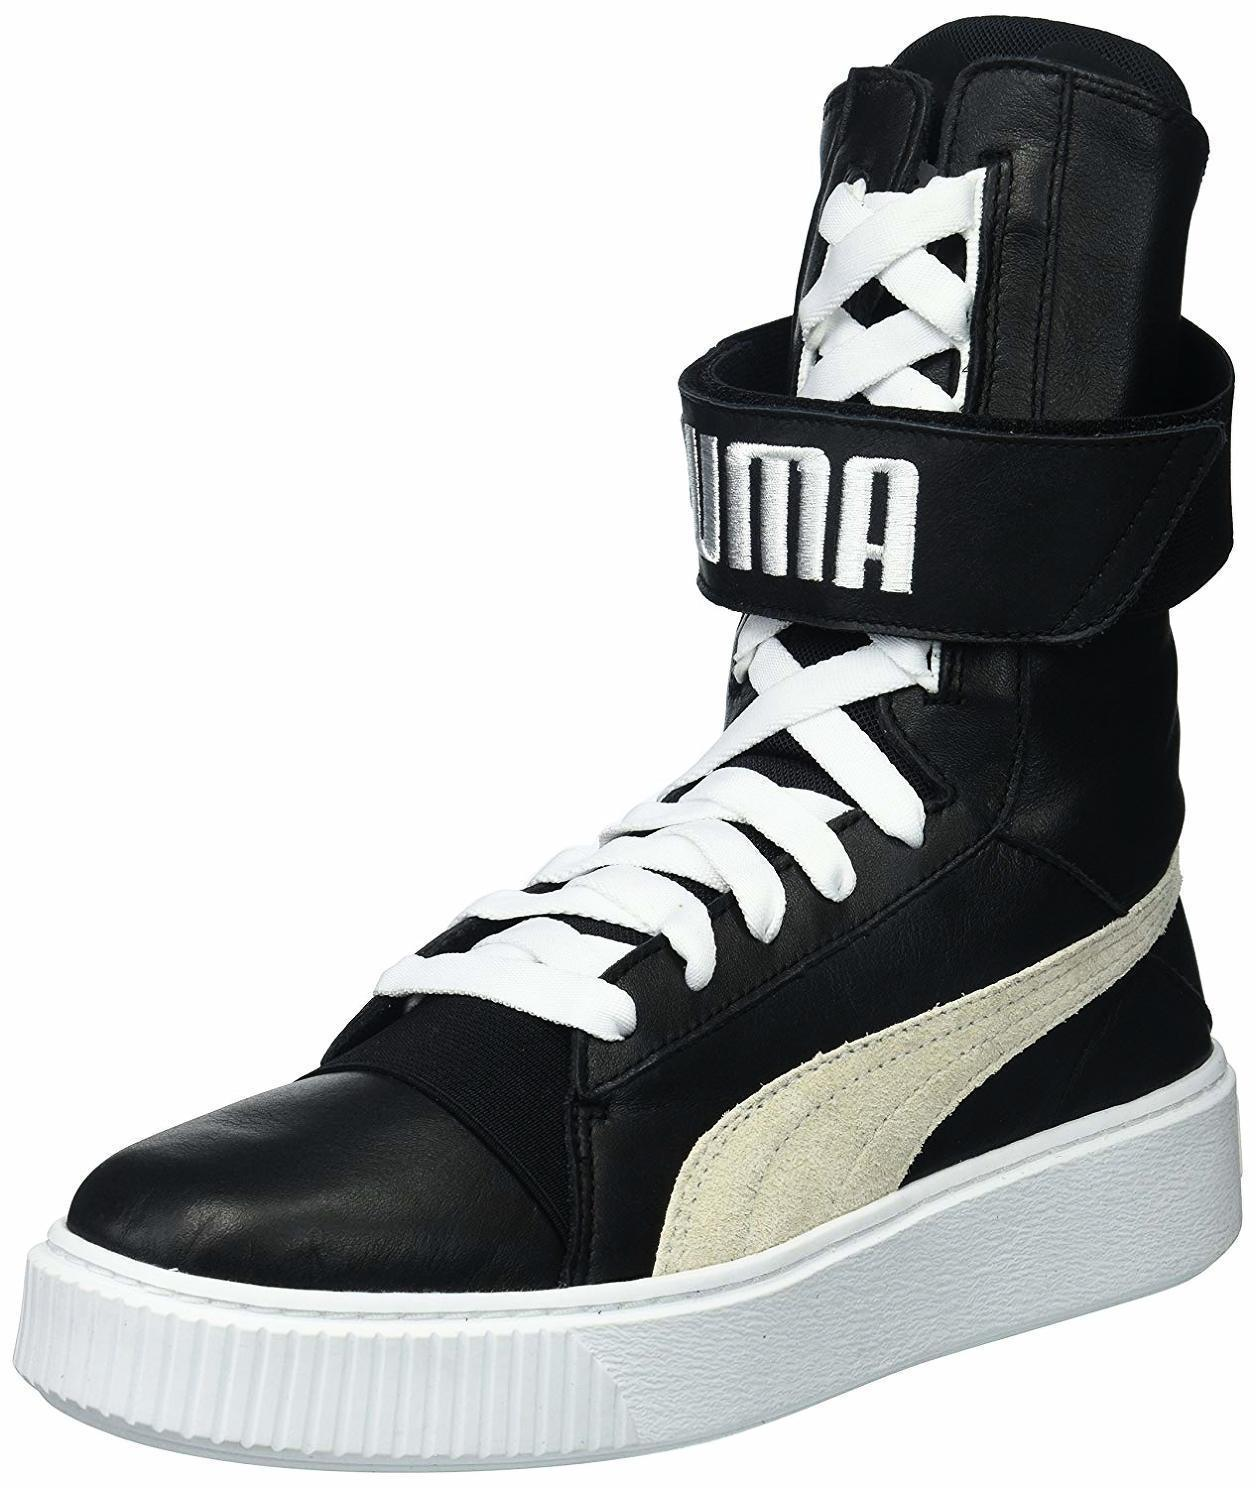 f7c58be51a9 PUMA Women s Platform Boot Wn - Choose and 50 similar items. S l1600